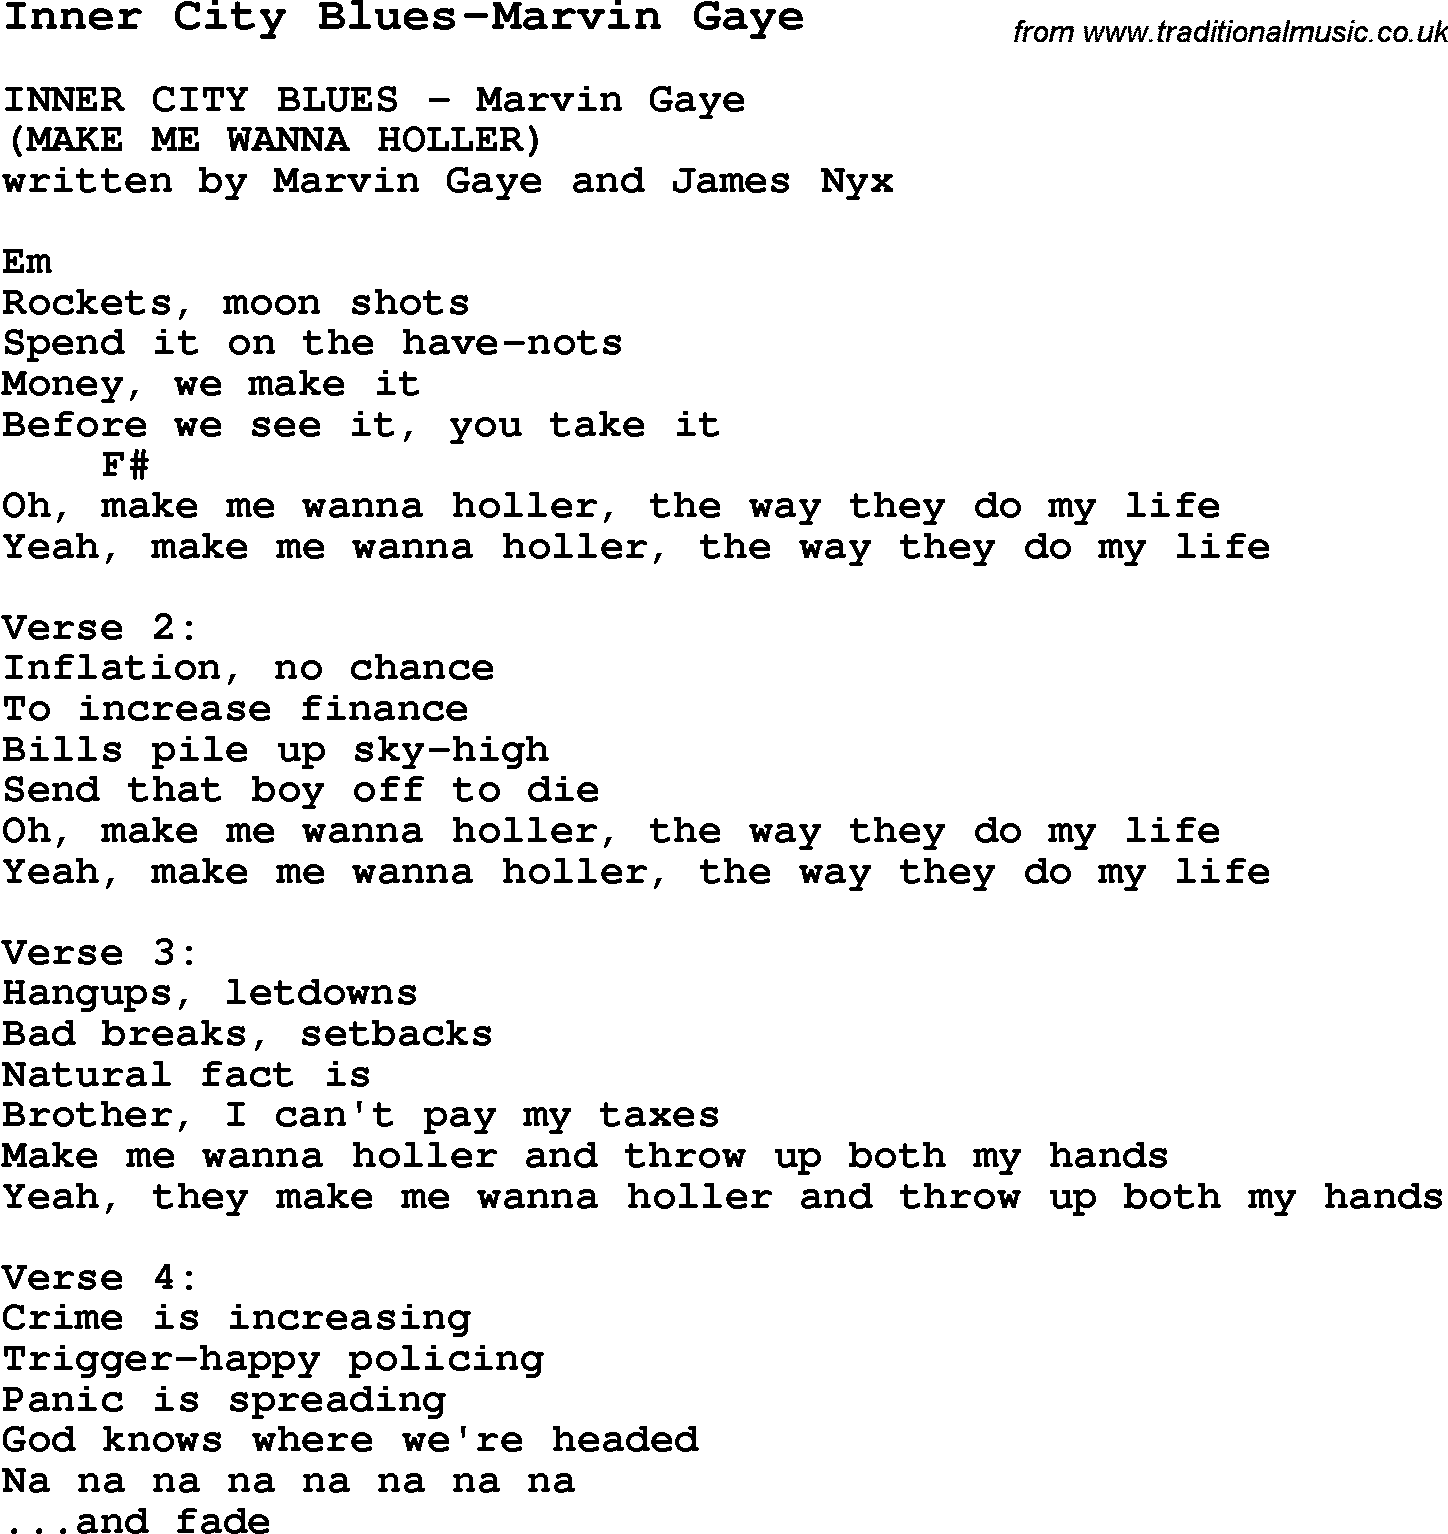 Whats going on marvin gay lyrics